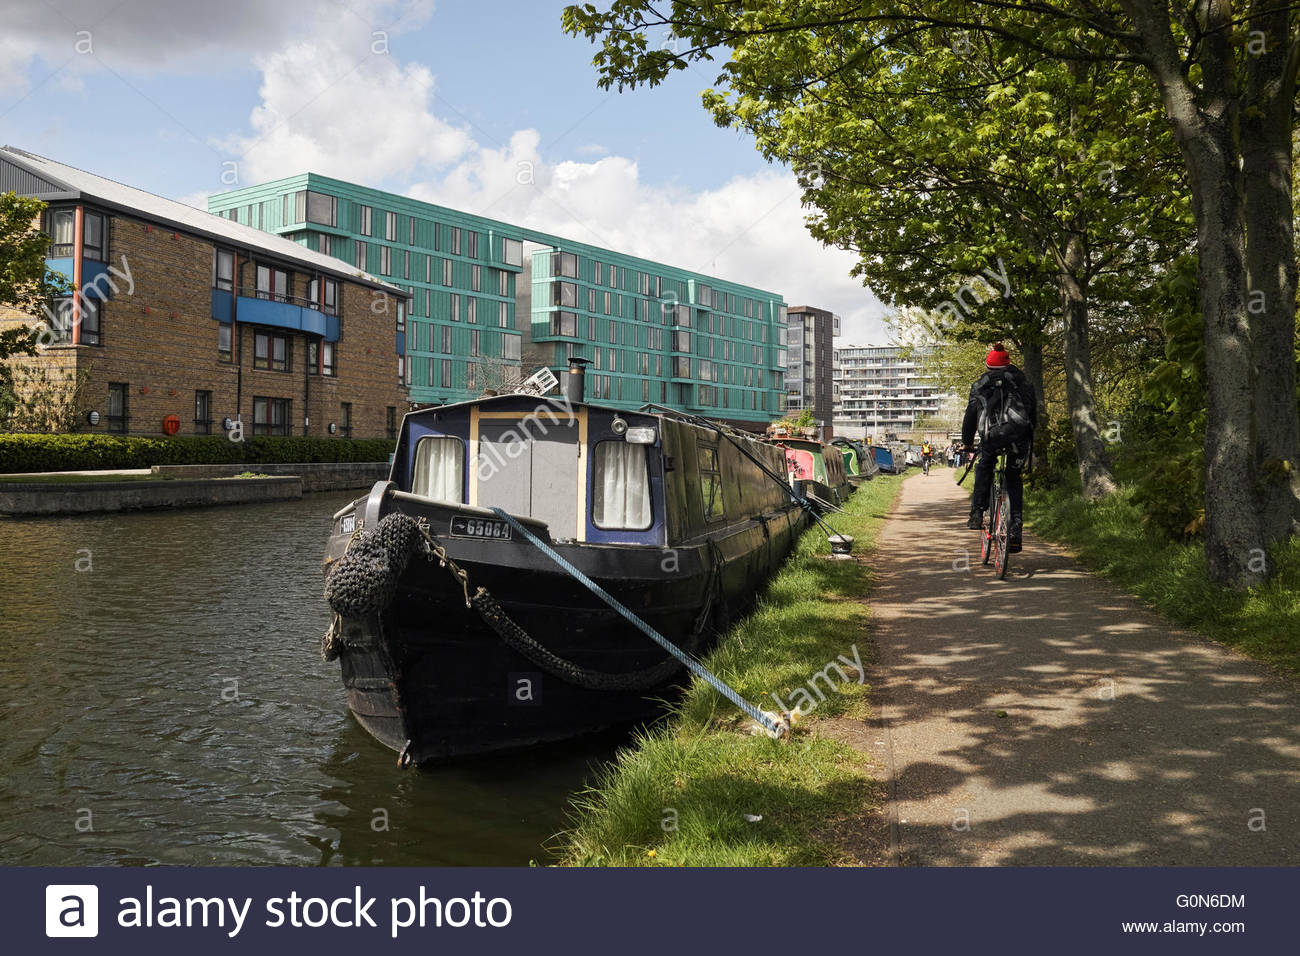 Cyclist on the Regents Canal towpath passing moored houseboats near Mile End Lock: London. - Stock Image